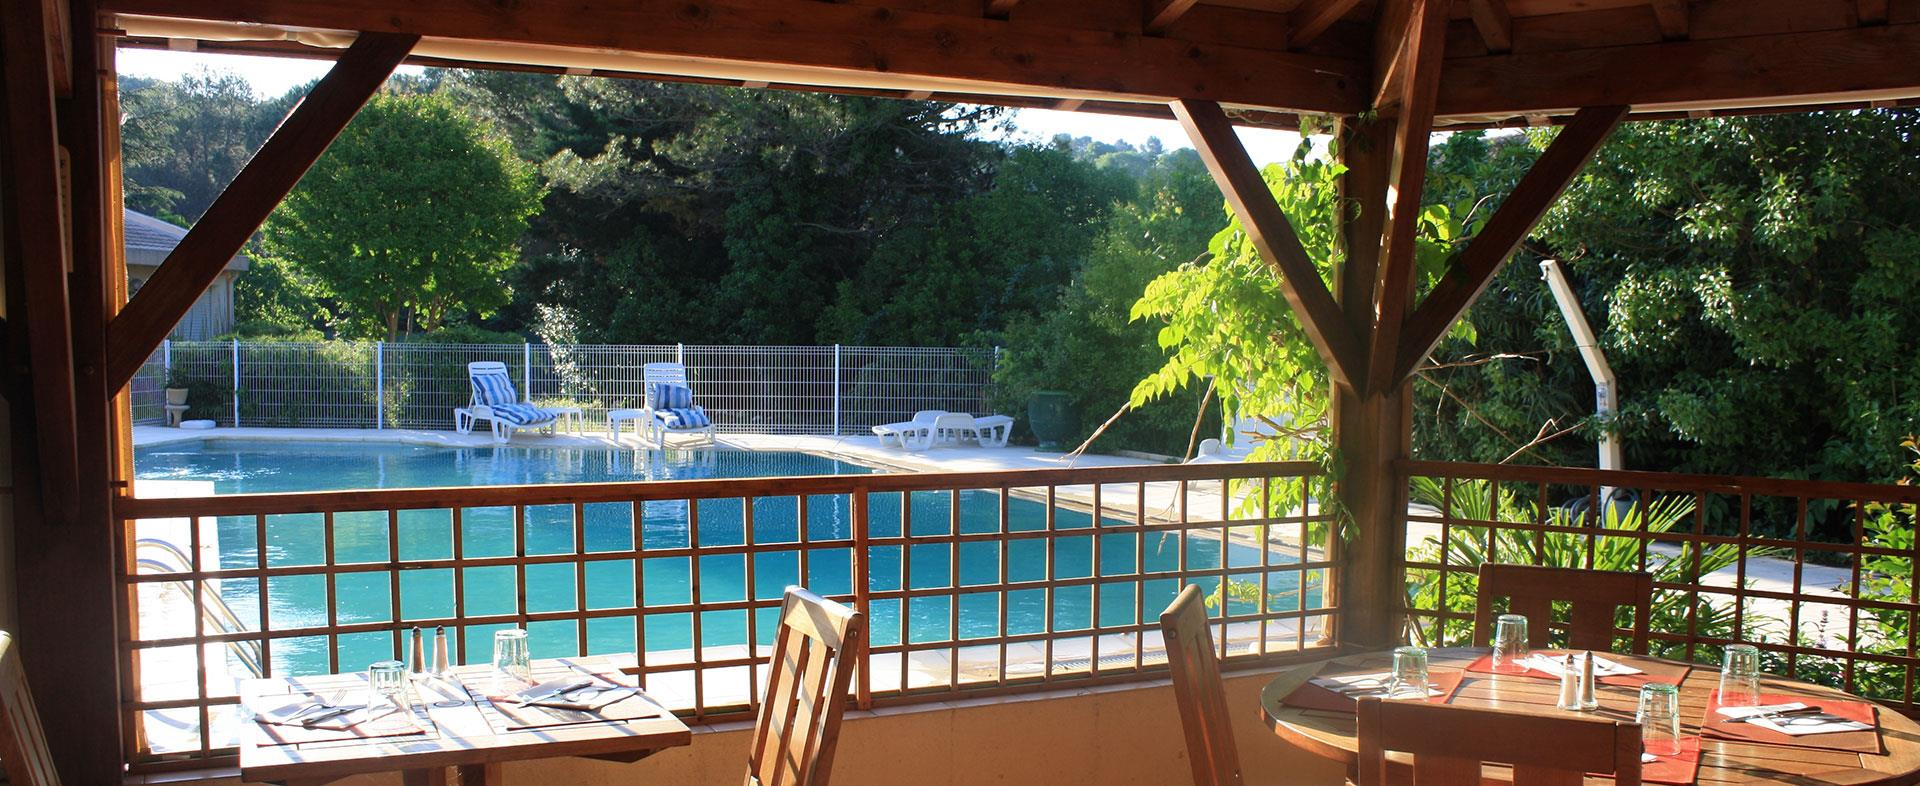 View across the pool from the terrace of the hotel Saint Benoit located in Hérault